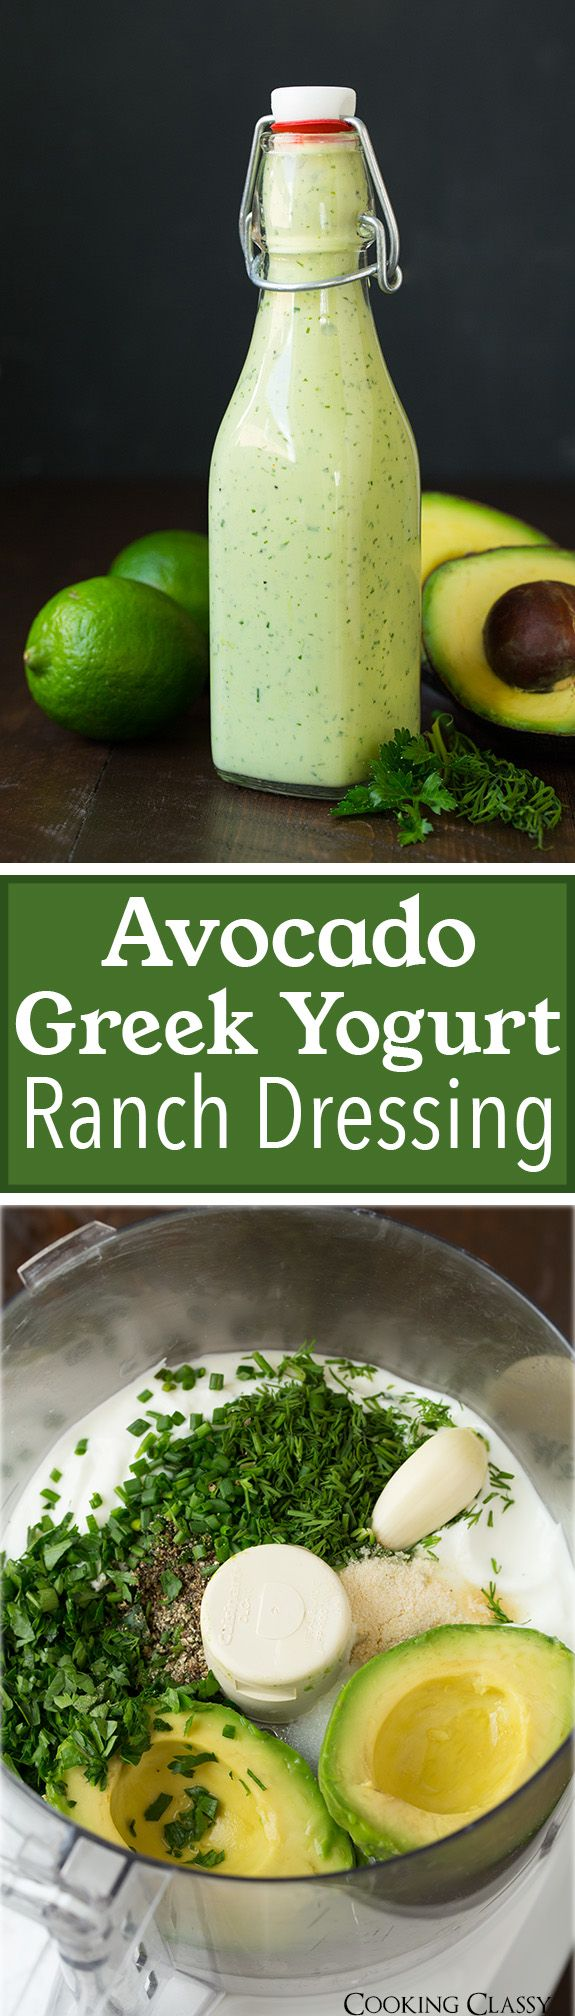 All Food and Drink: Avocado Greek Yogurt Ranch Dressing - Cooking Clas...